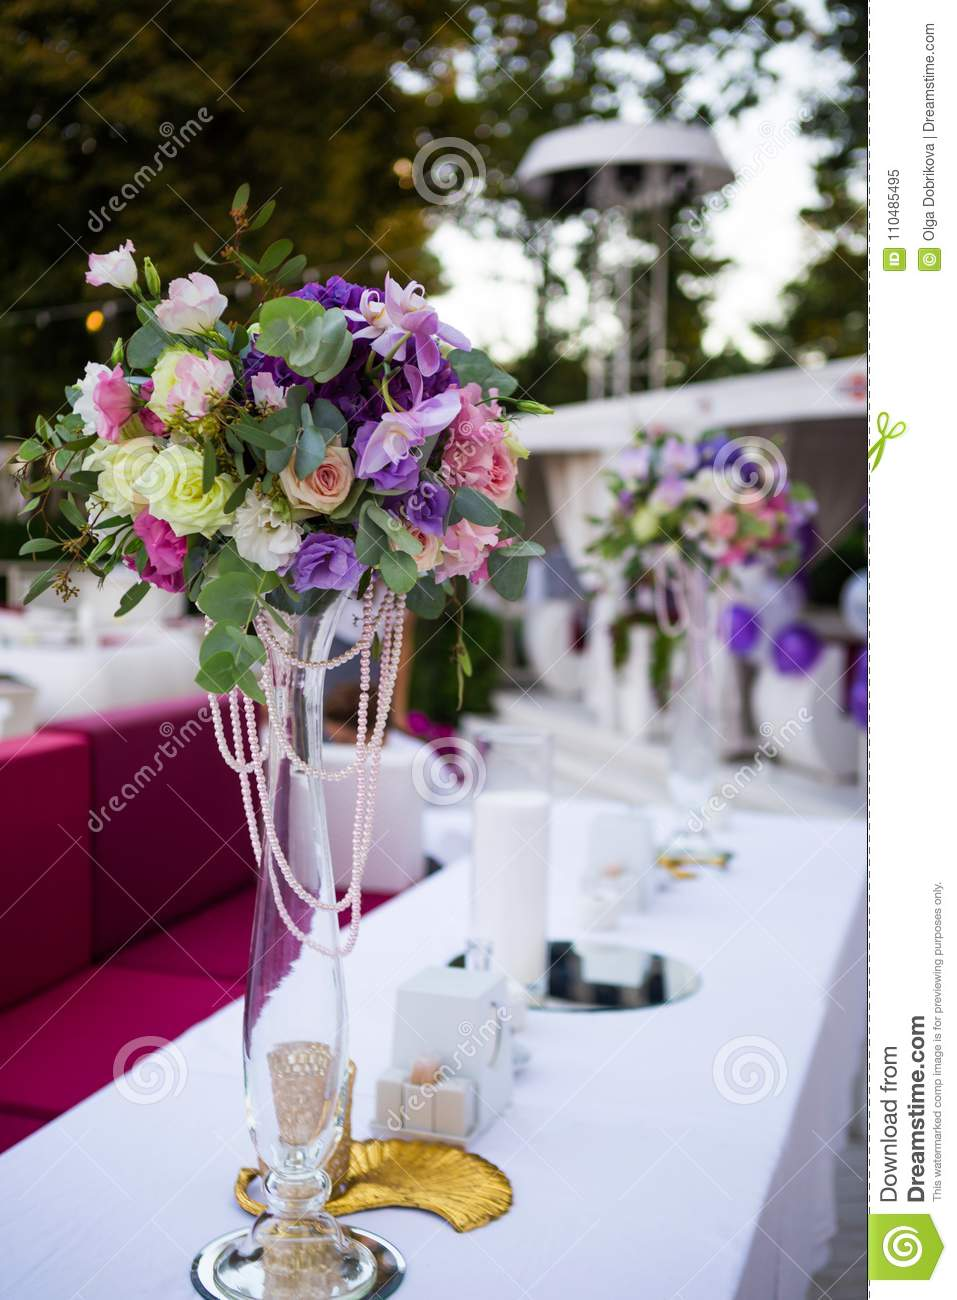 Flower decoration on festive table in open air cafe stock image flower decoration on festive table in open air cafe beautiful wedding decorations festive table with flowers in vase junglespirit Image collections